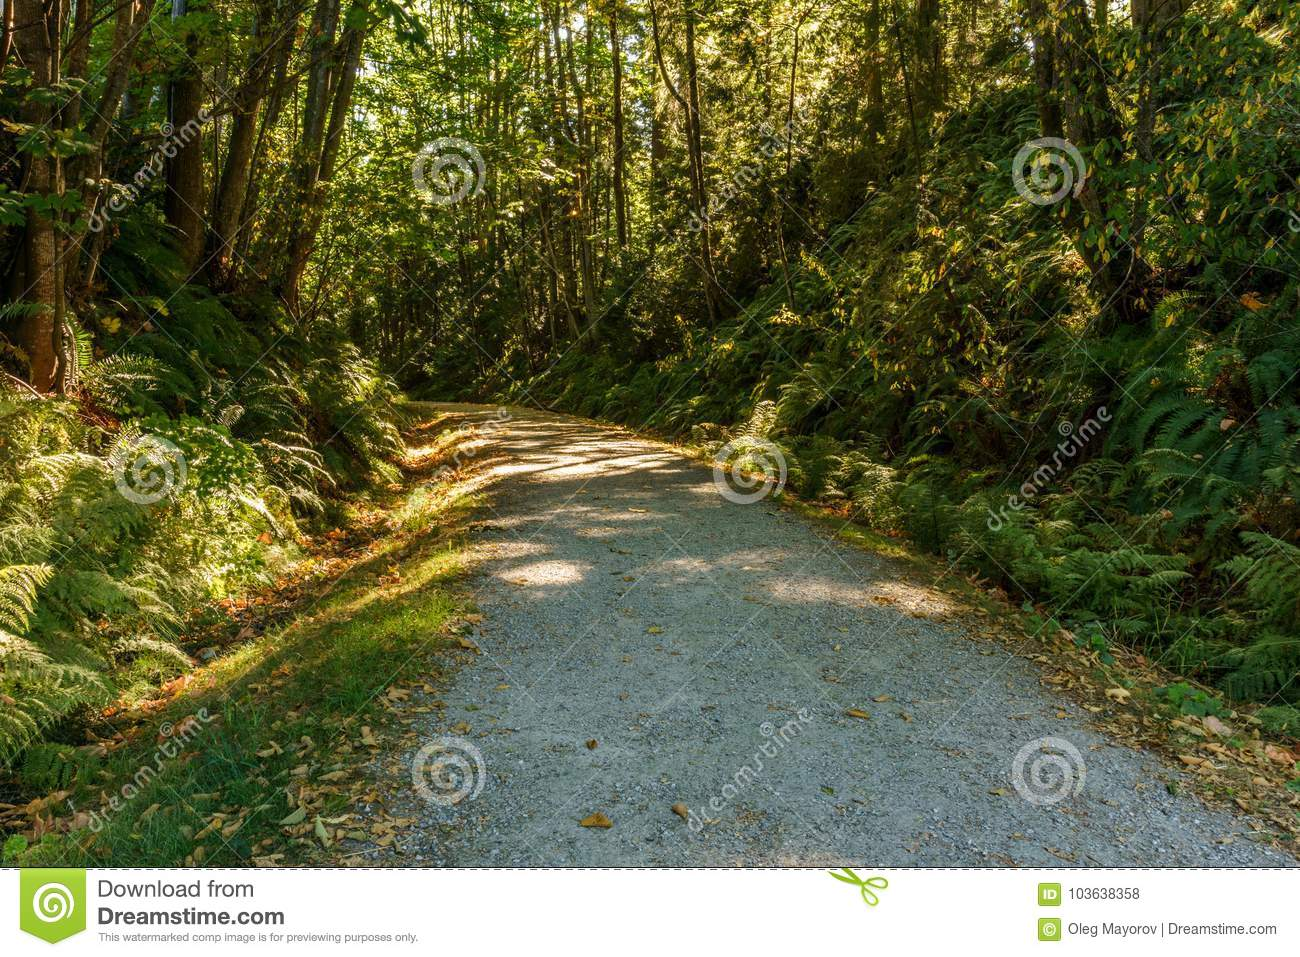 Scenic and beautiful hiking gravel road or trail in the forest.